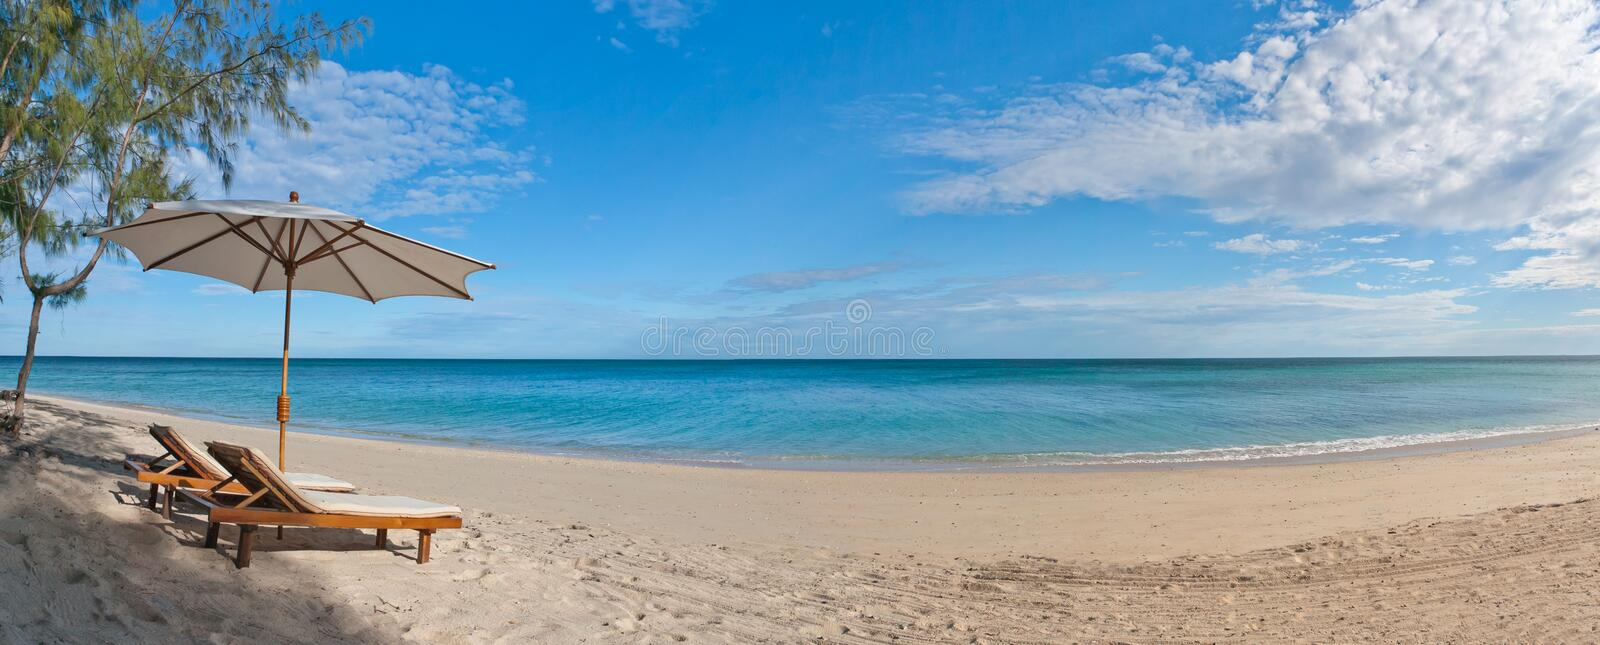 Download Deckchairs on the beach stock photo. Image of tranquility - 15248304